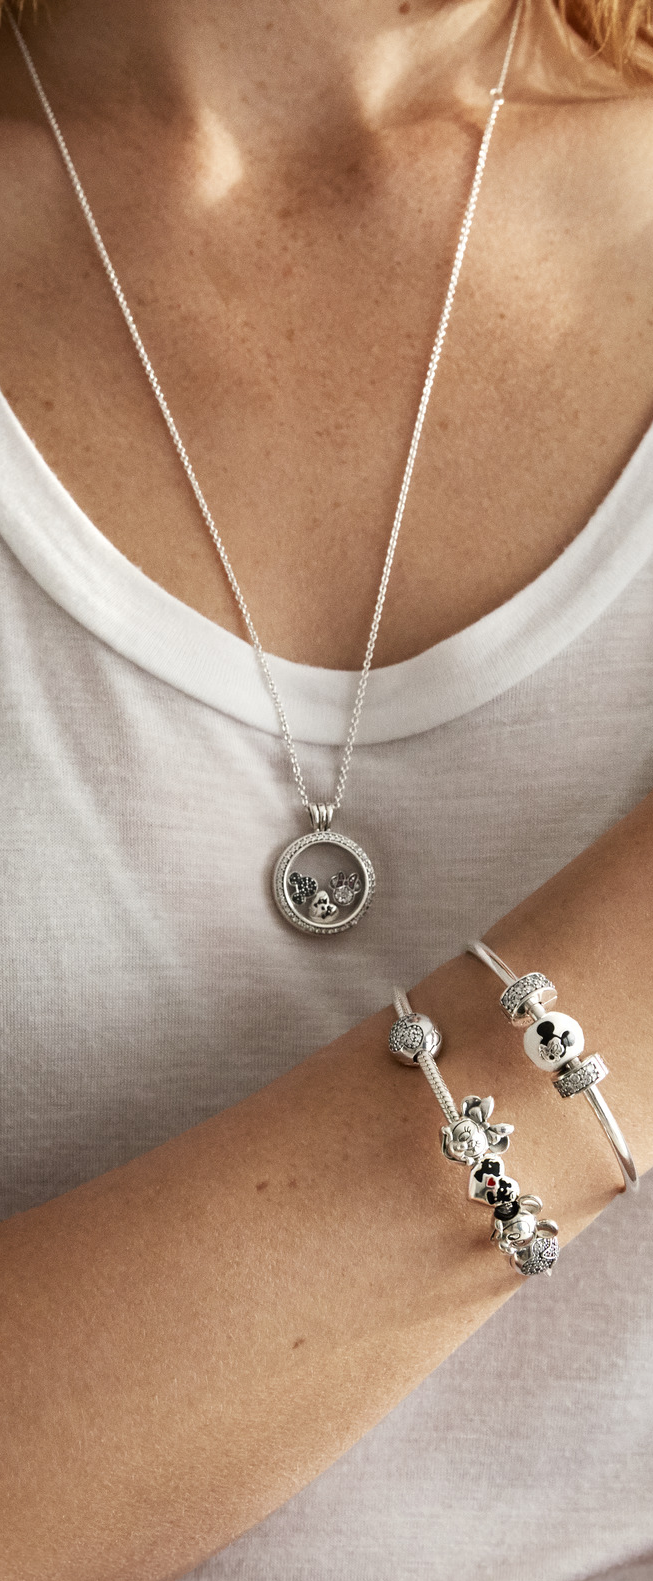 29622ec2a Do See The Magic with our new PANDORA Disney charms and petites perfect to  adorn your bracelets and lockets.